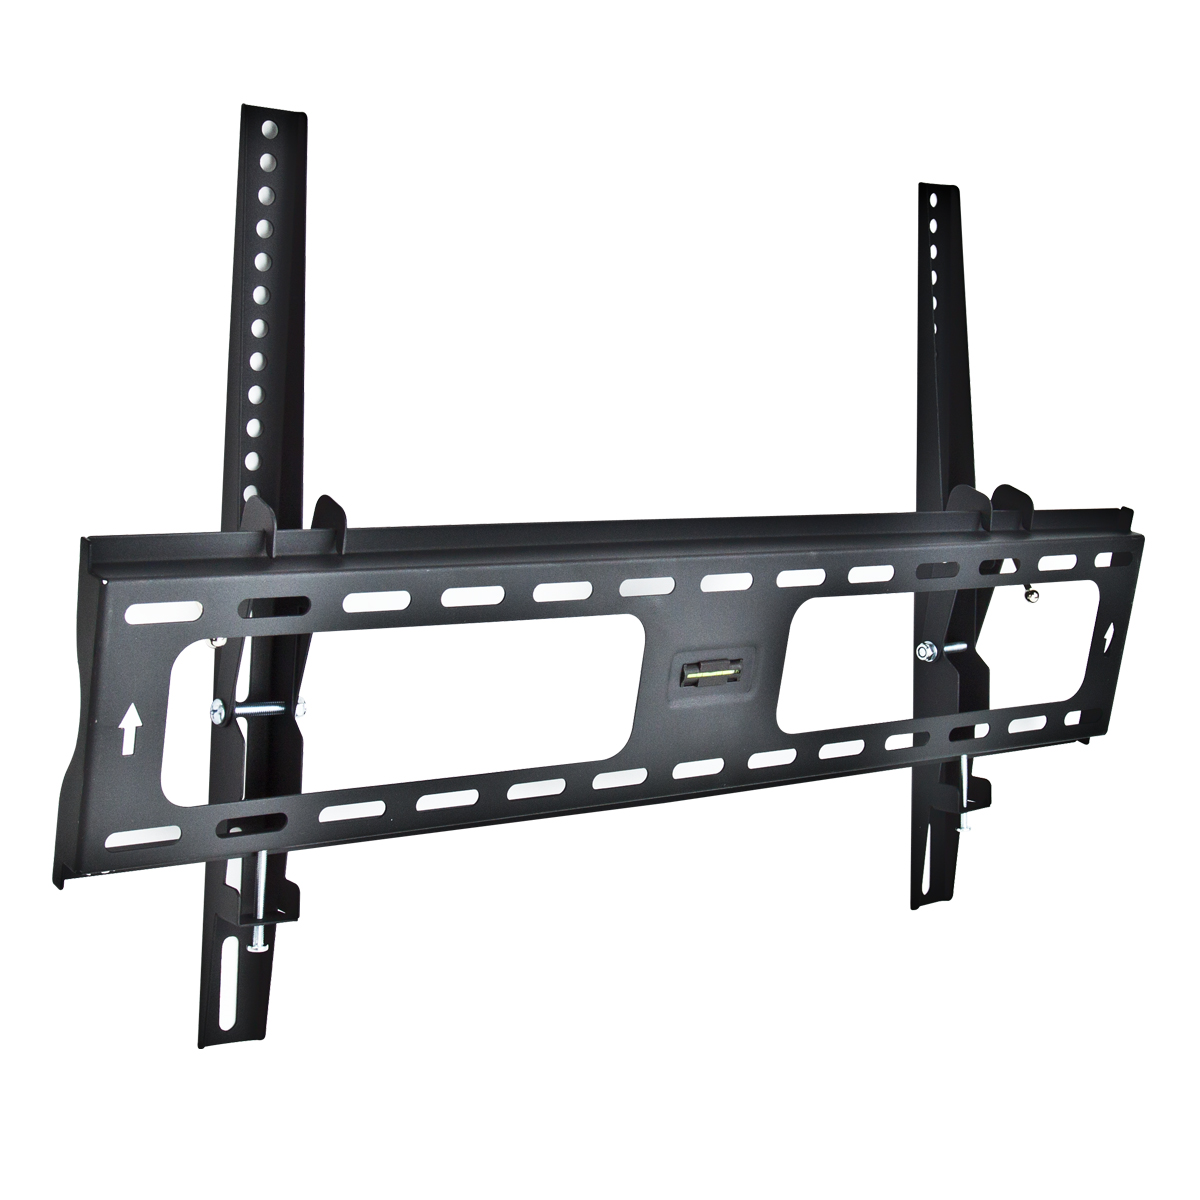 2 universal tilt tv wall mount flat screen bracket 30 60. Black Bedroom Furniture Sets. Home Design Ideas